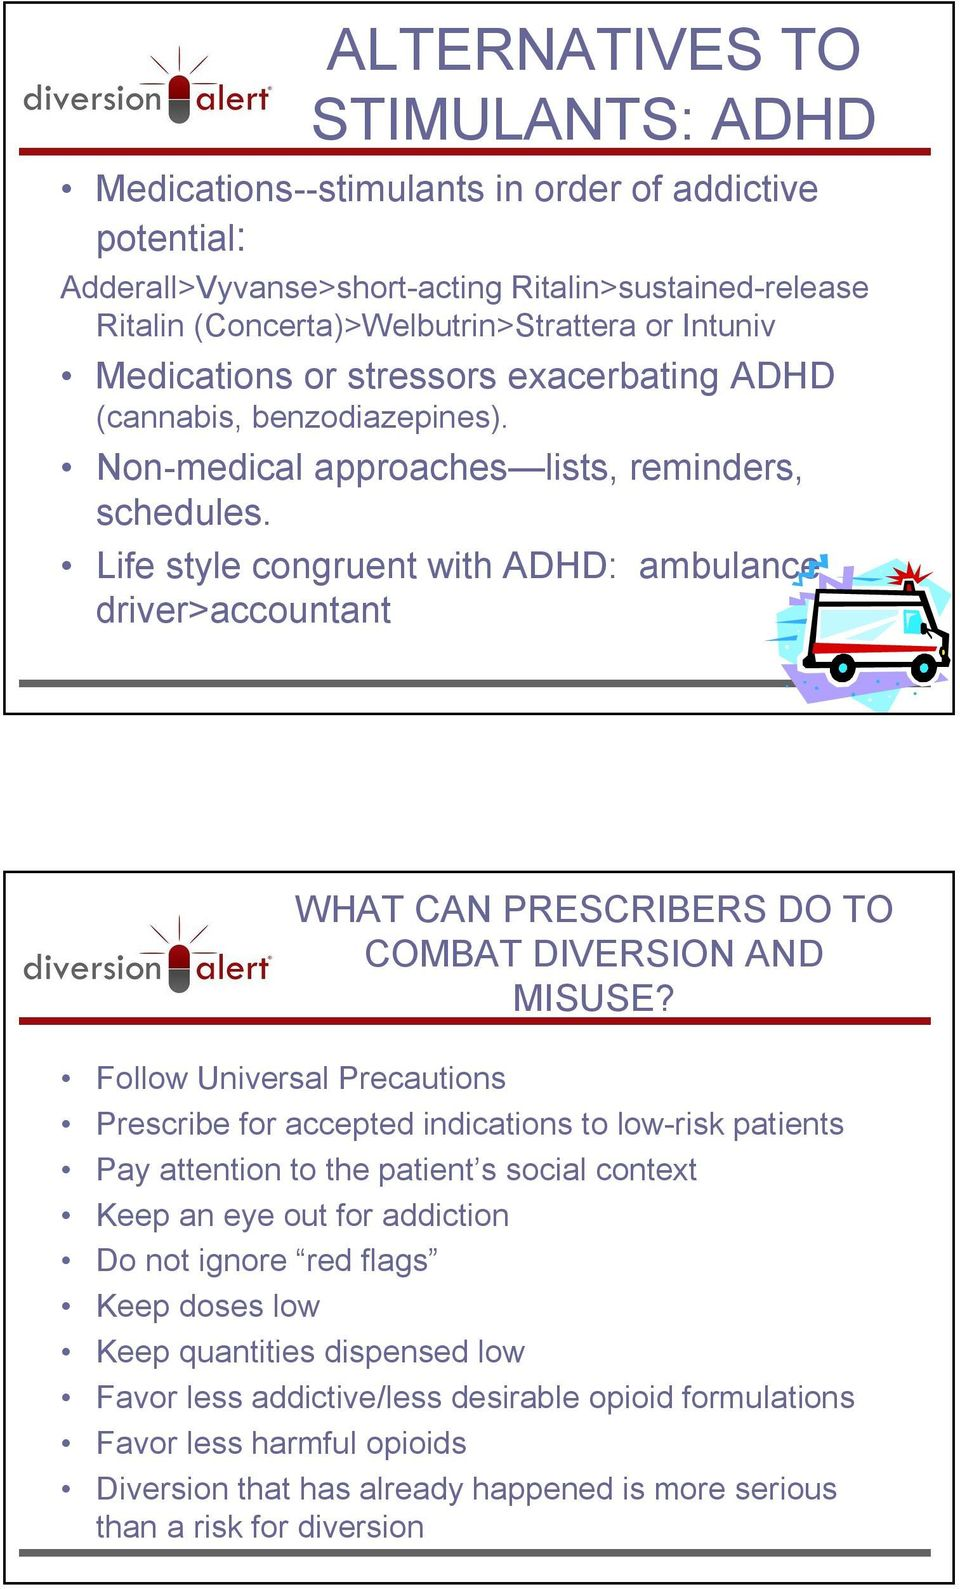 Life style congruent with ADHD: ambulance driver>accountant WHAT CAN PRESCRIBERS DO TO COMBAT DIVERSION AND MISUSE?